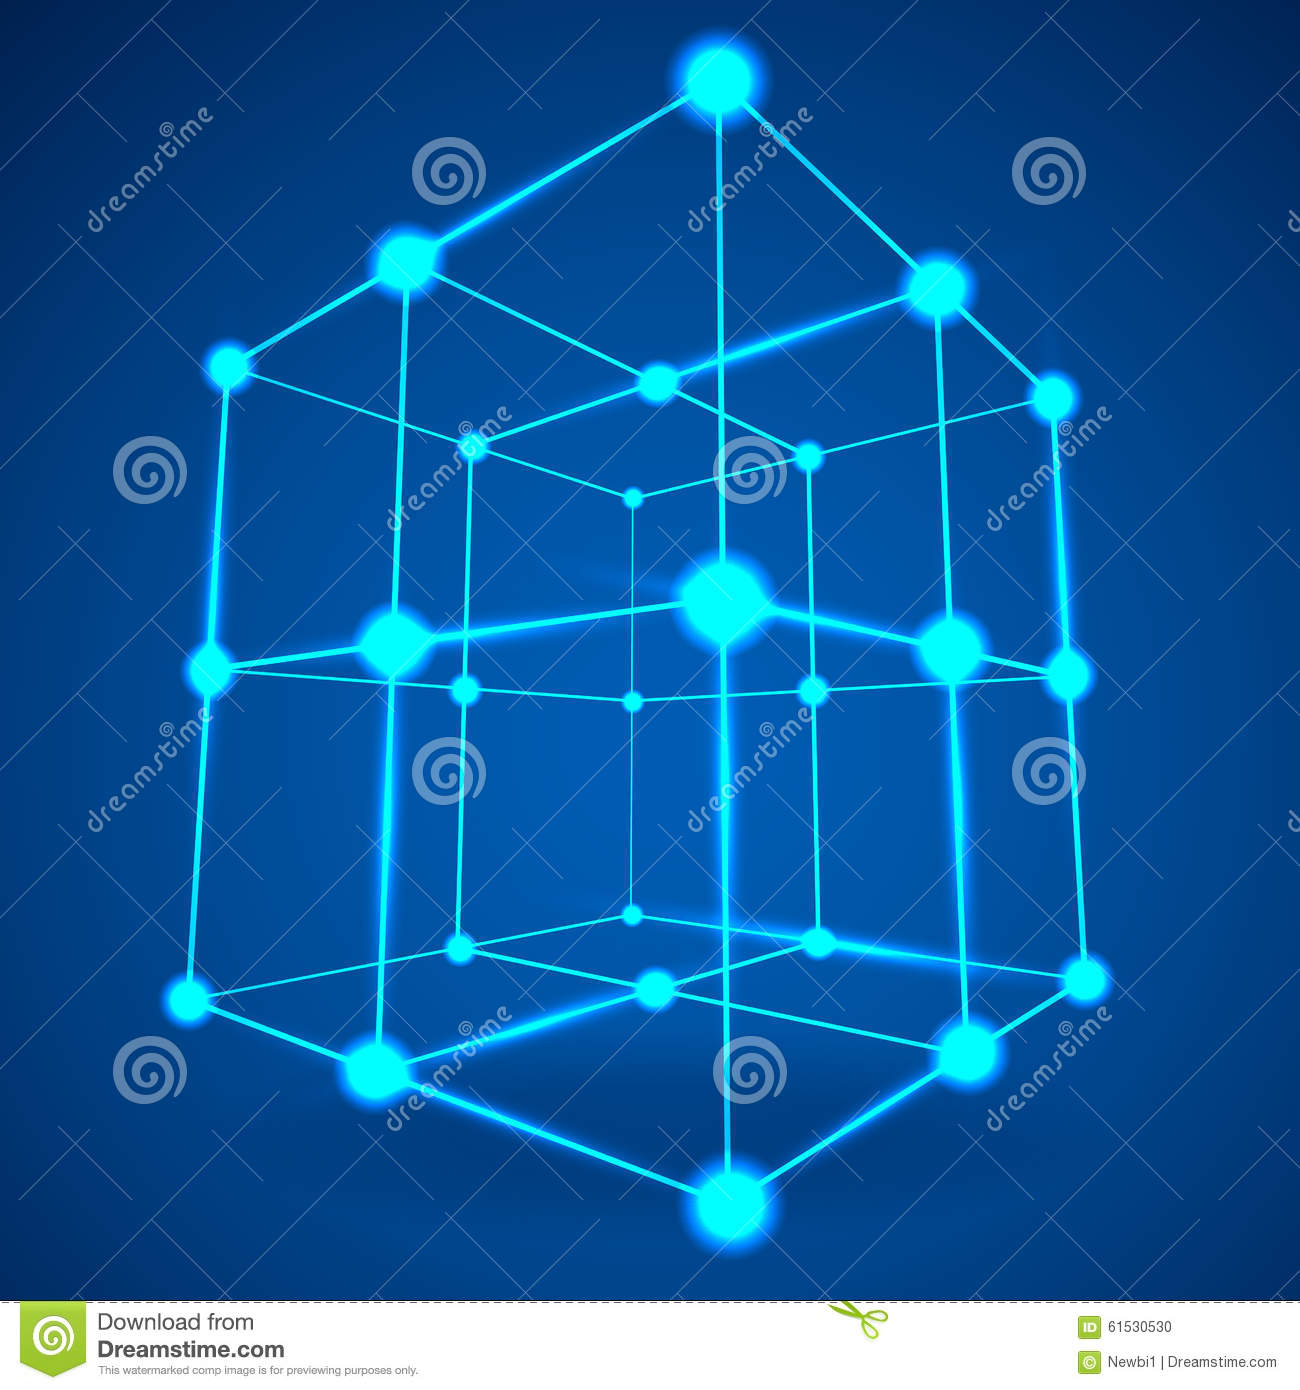 Wireframe Mesh Cube. Connected Dots And Lines. Home Design Ideas